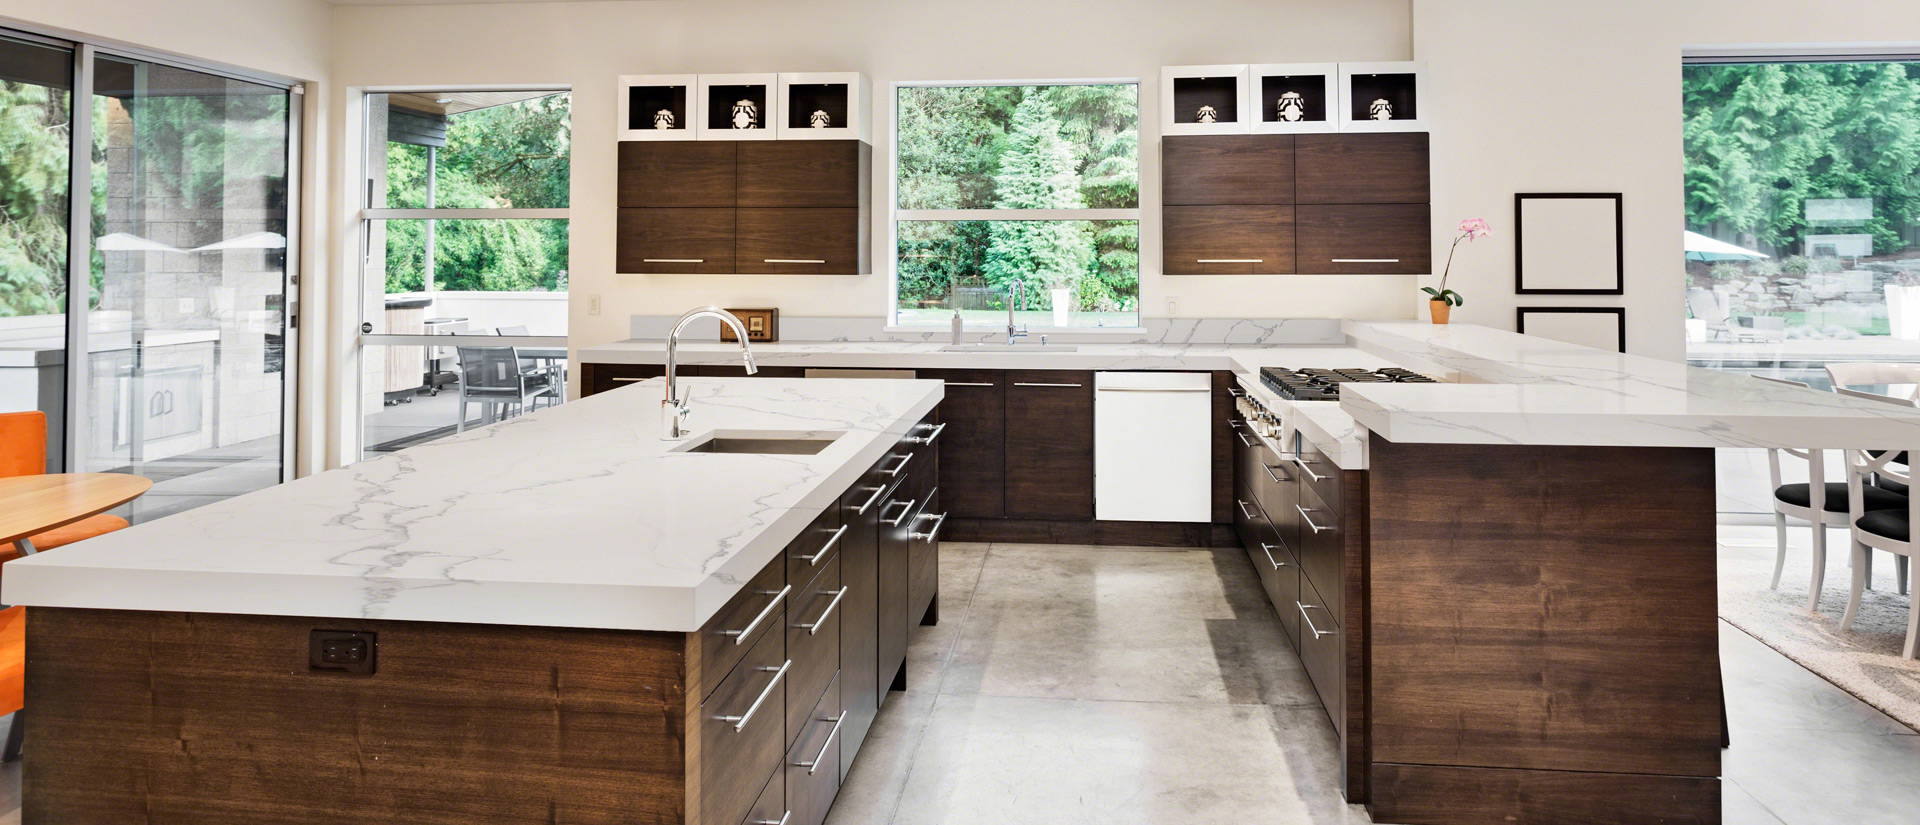 Ordinaire ... Statuary Classique Prefabricated Quartz Countertop By MSI Inc.,  Countertops, MSI Inc   The ...